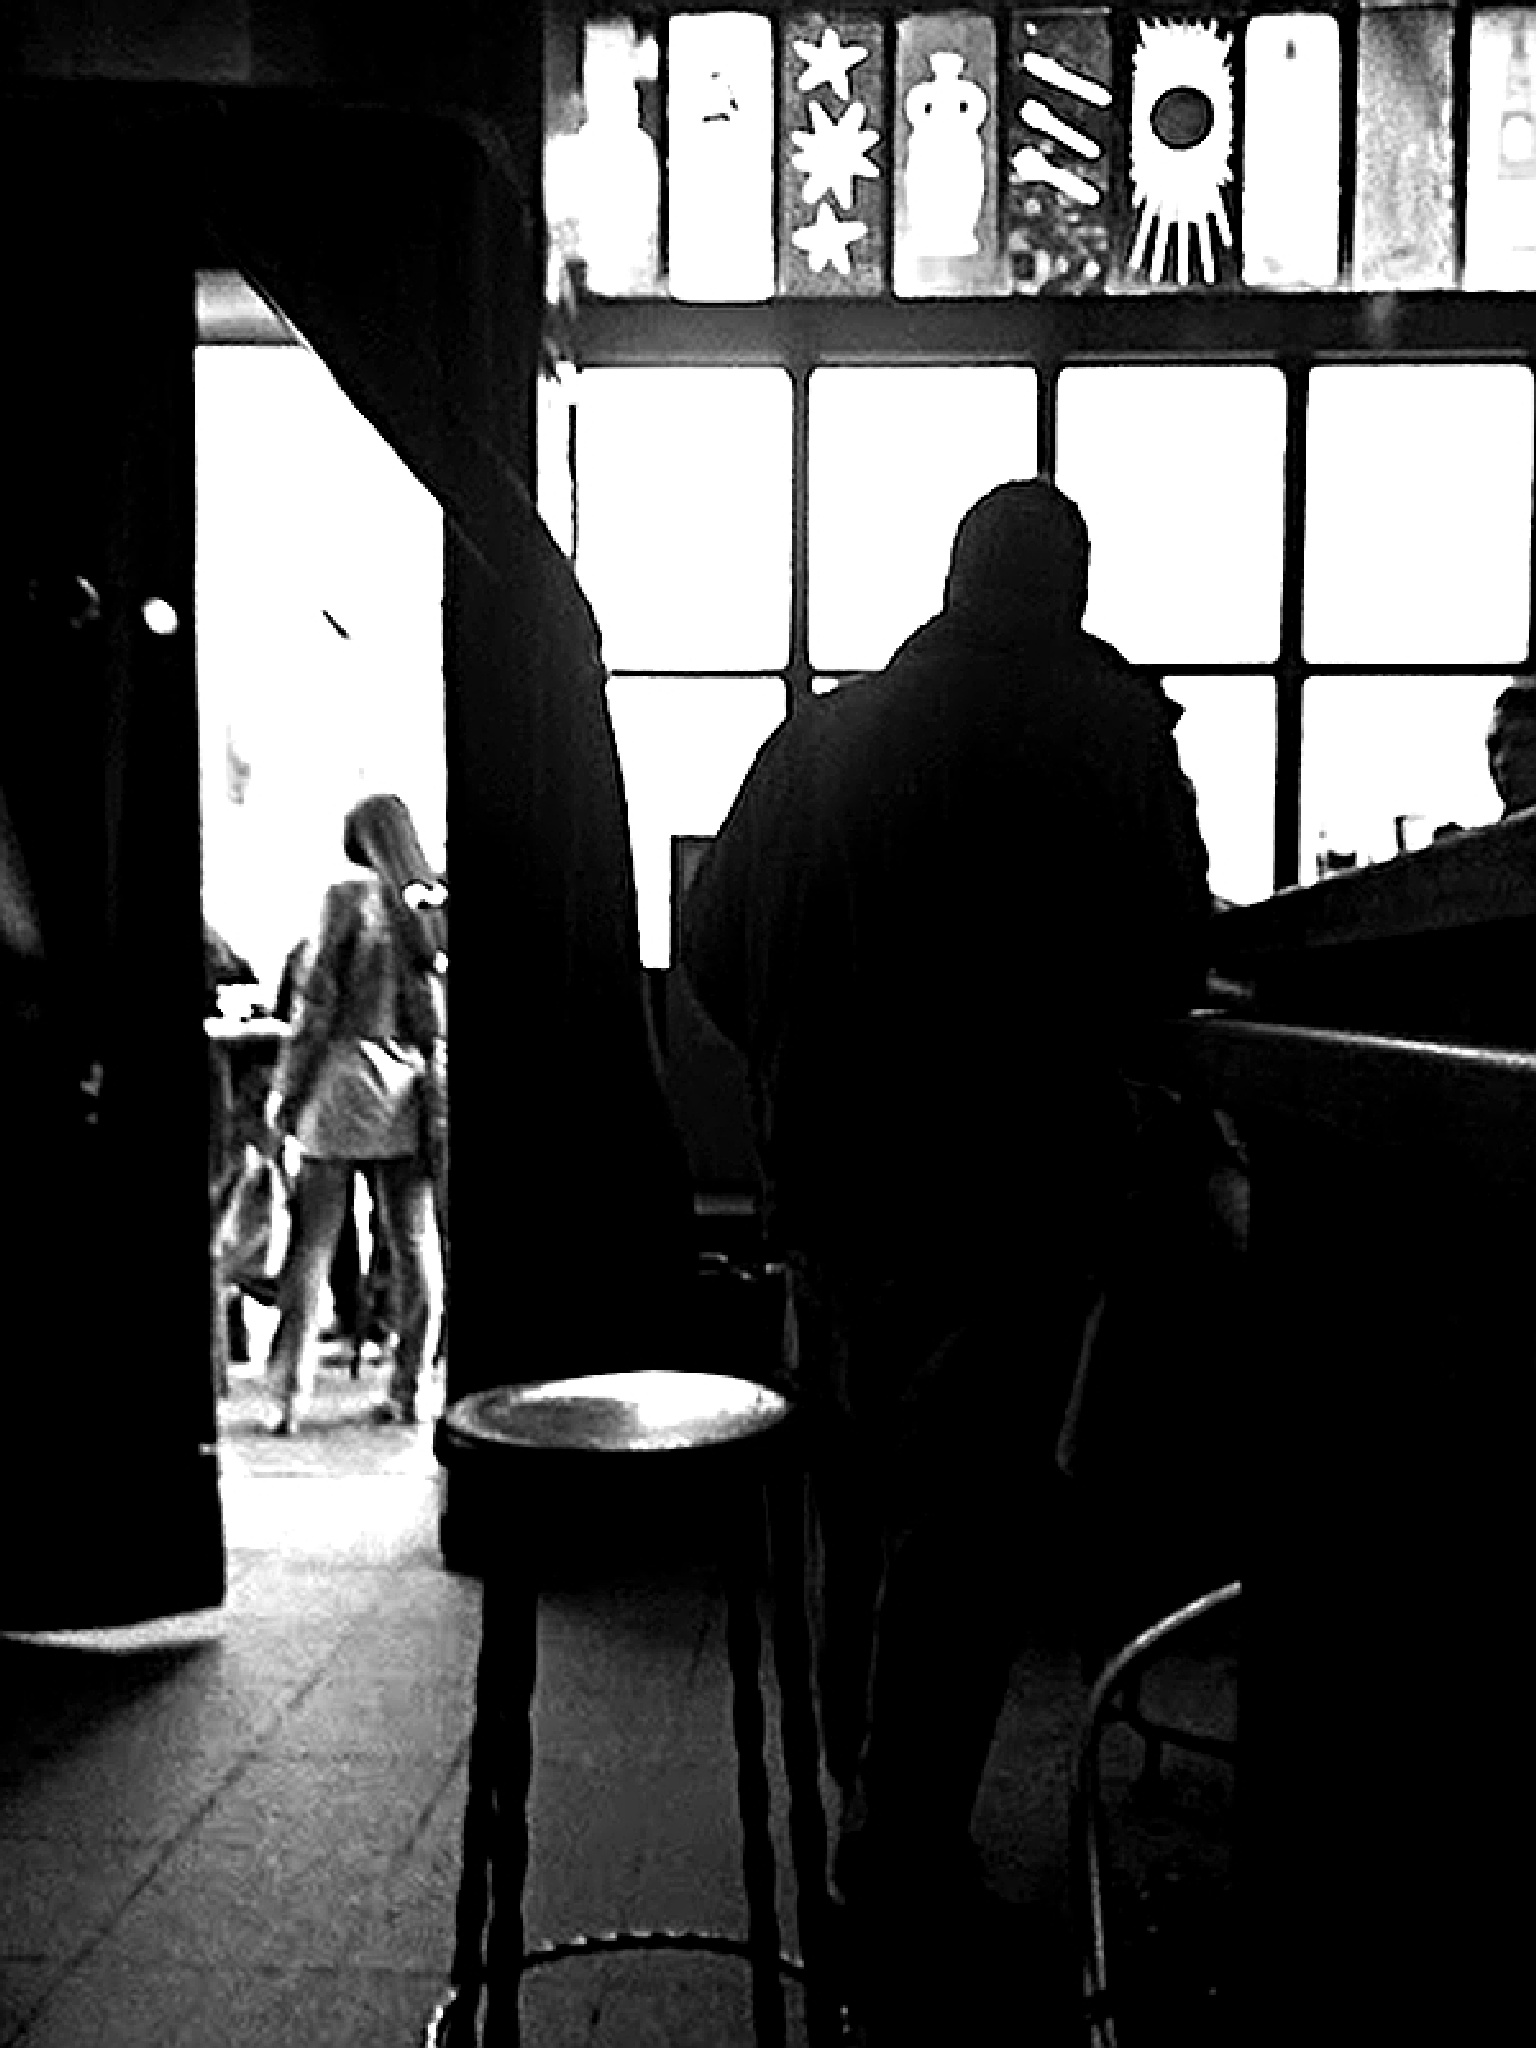 In the pub by Gernot Schwarz